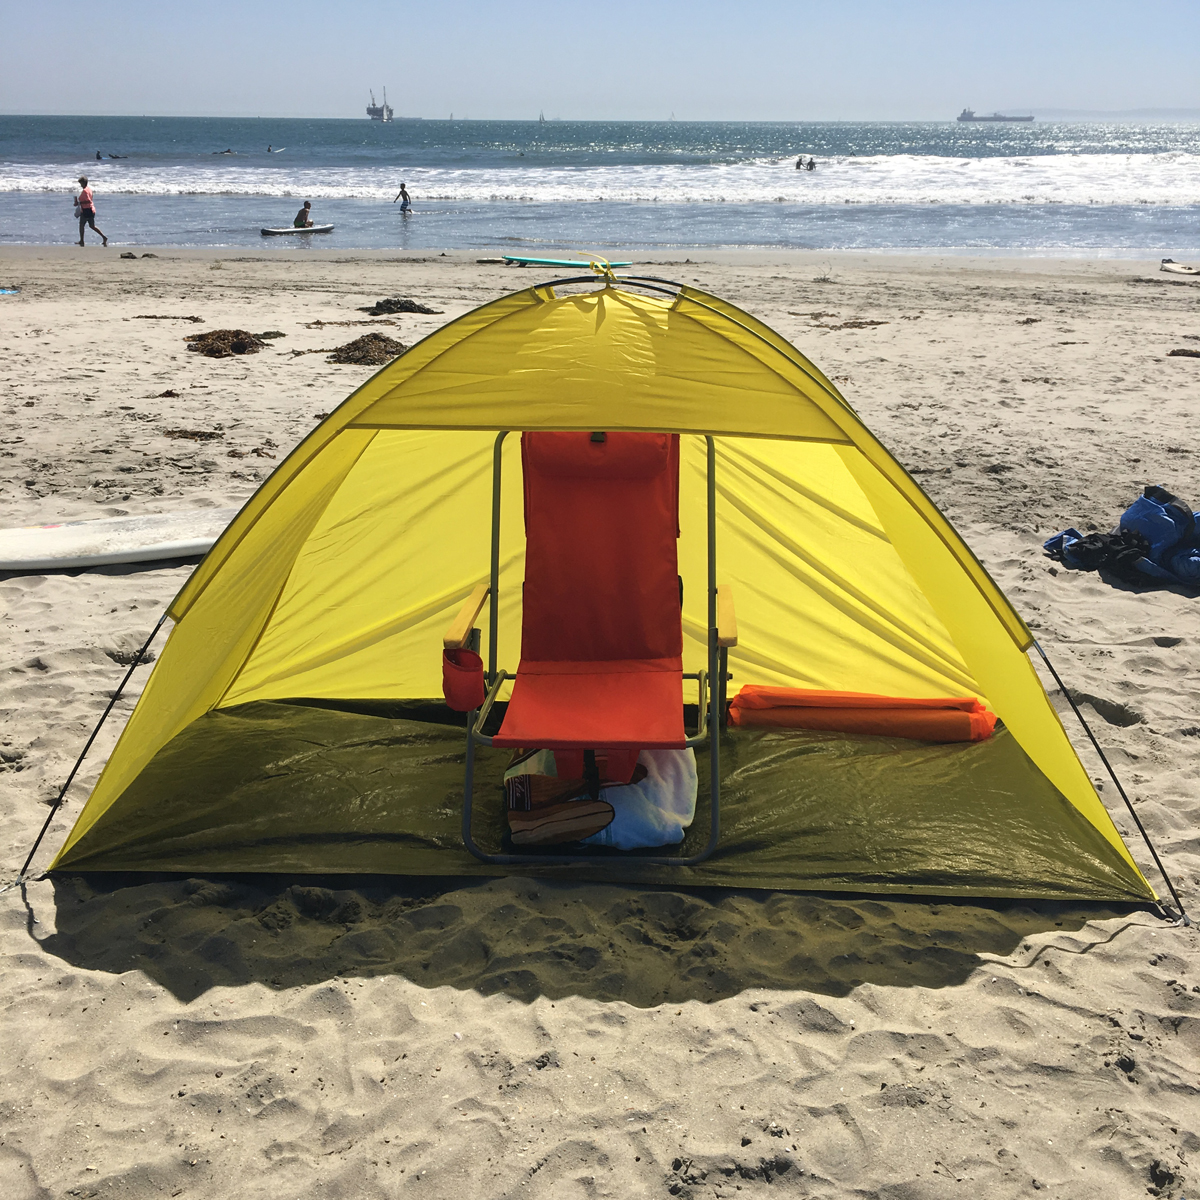 Portable Pop Up Shelters : New portable pop up cabana beach shelter yellow sand tent